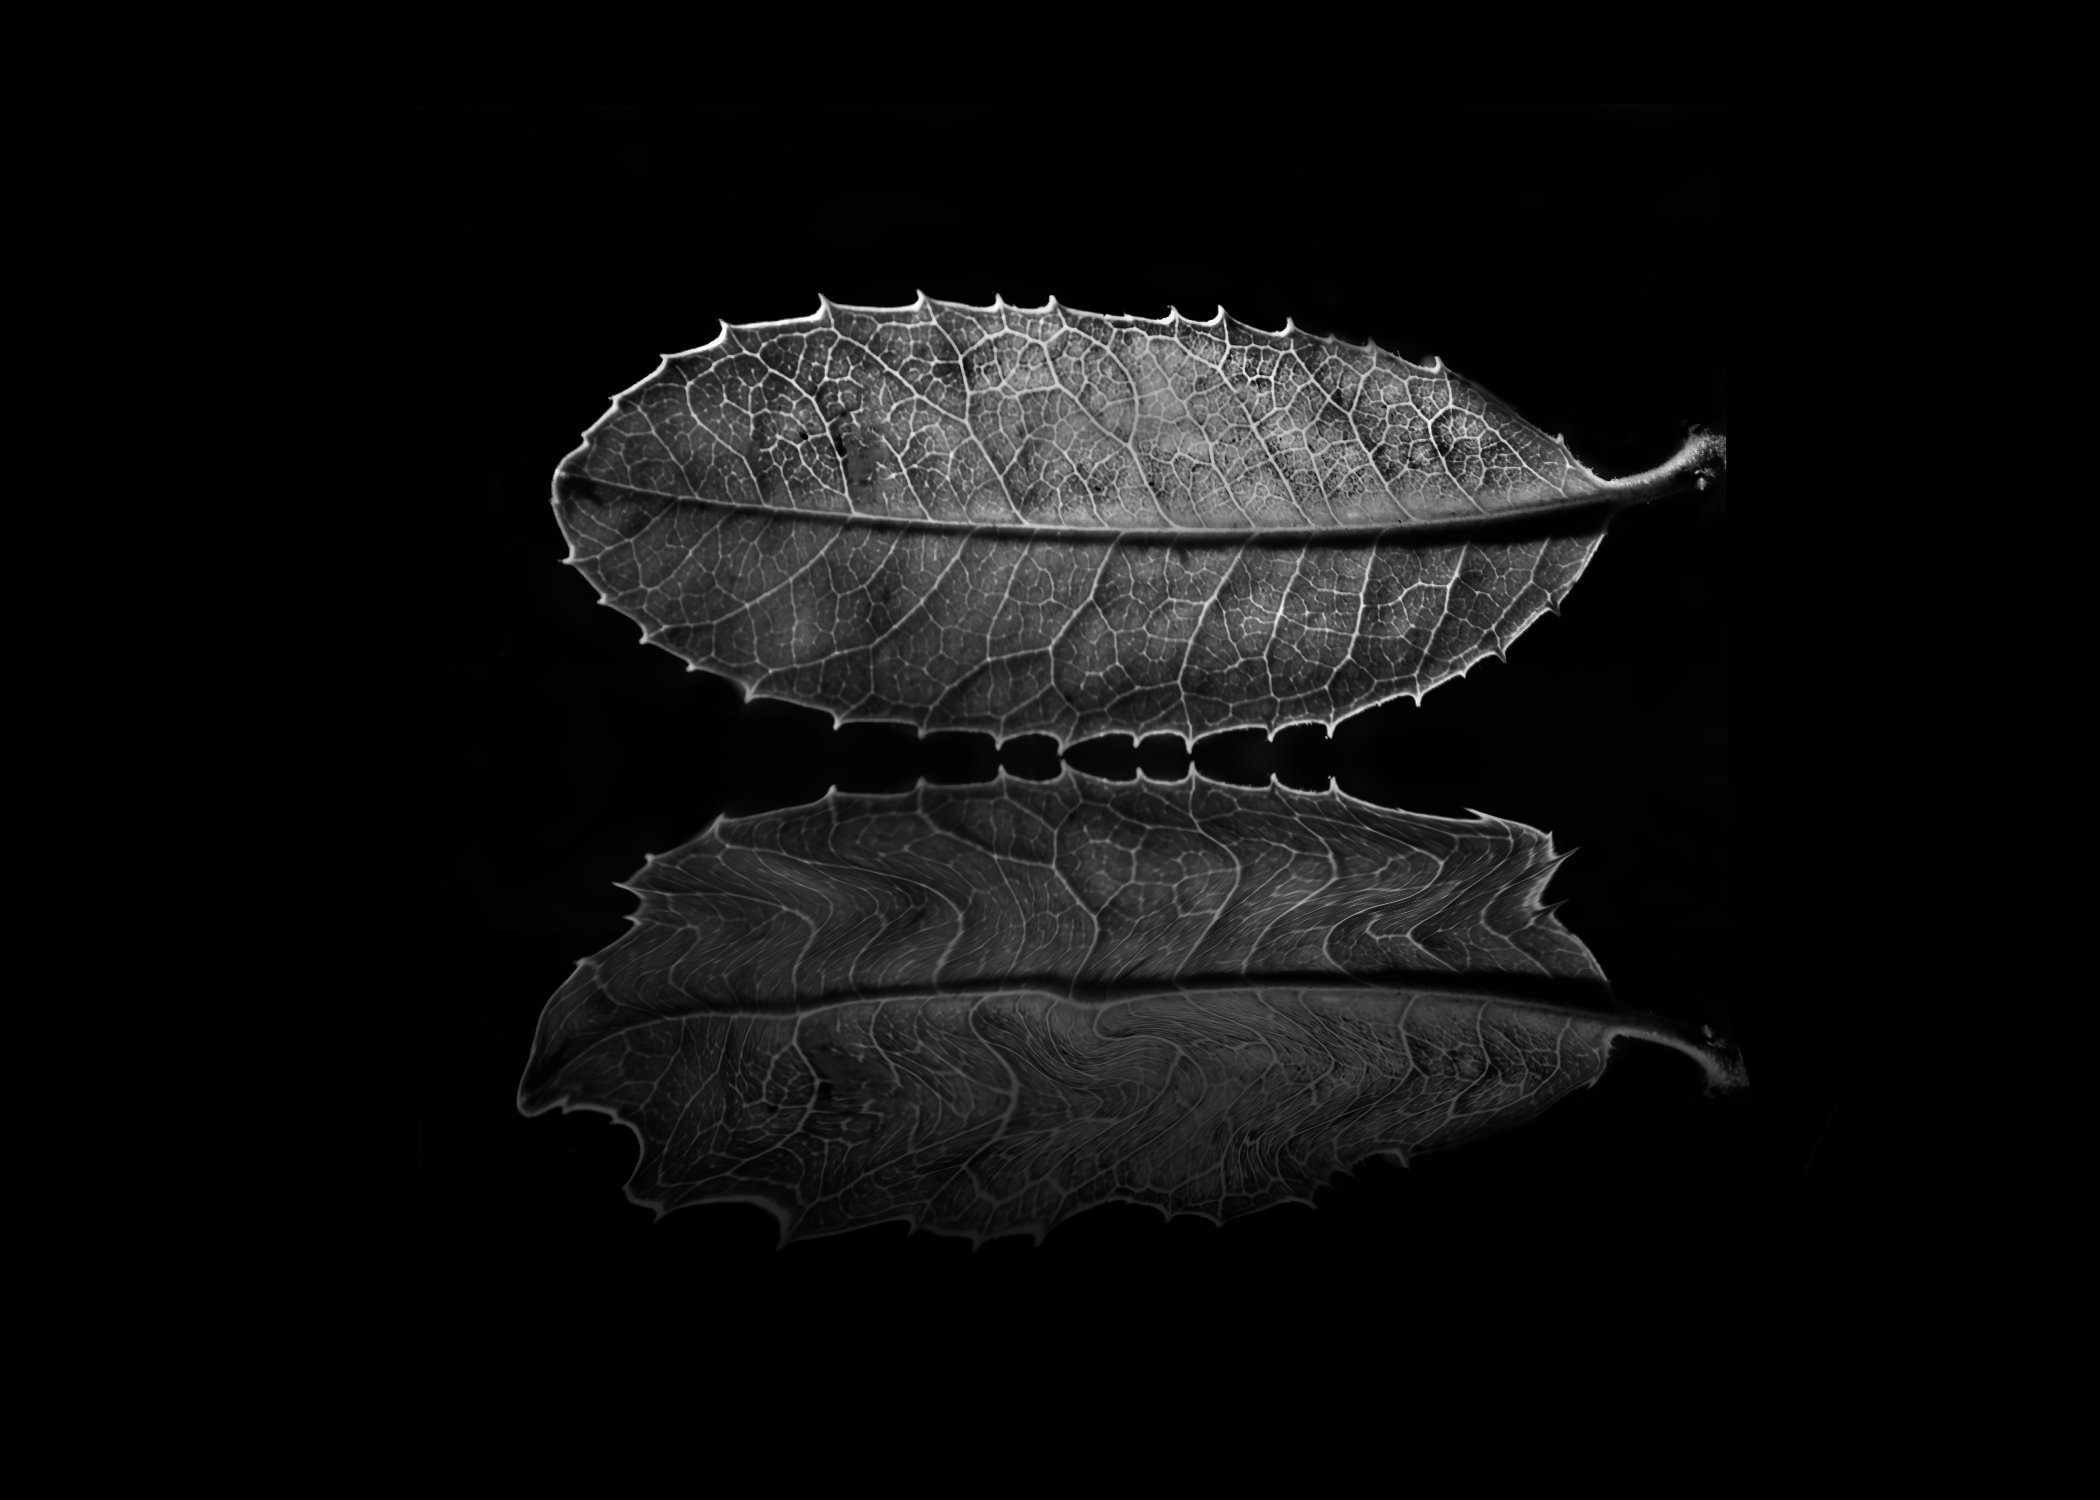 Leaf Reflection